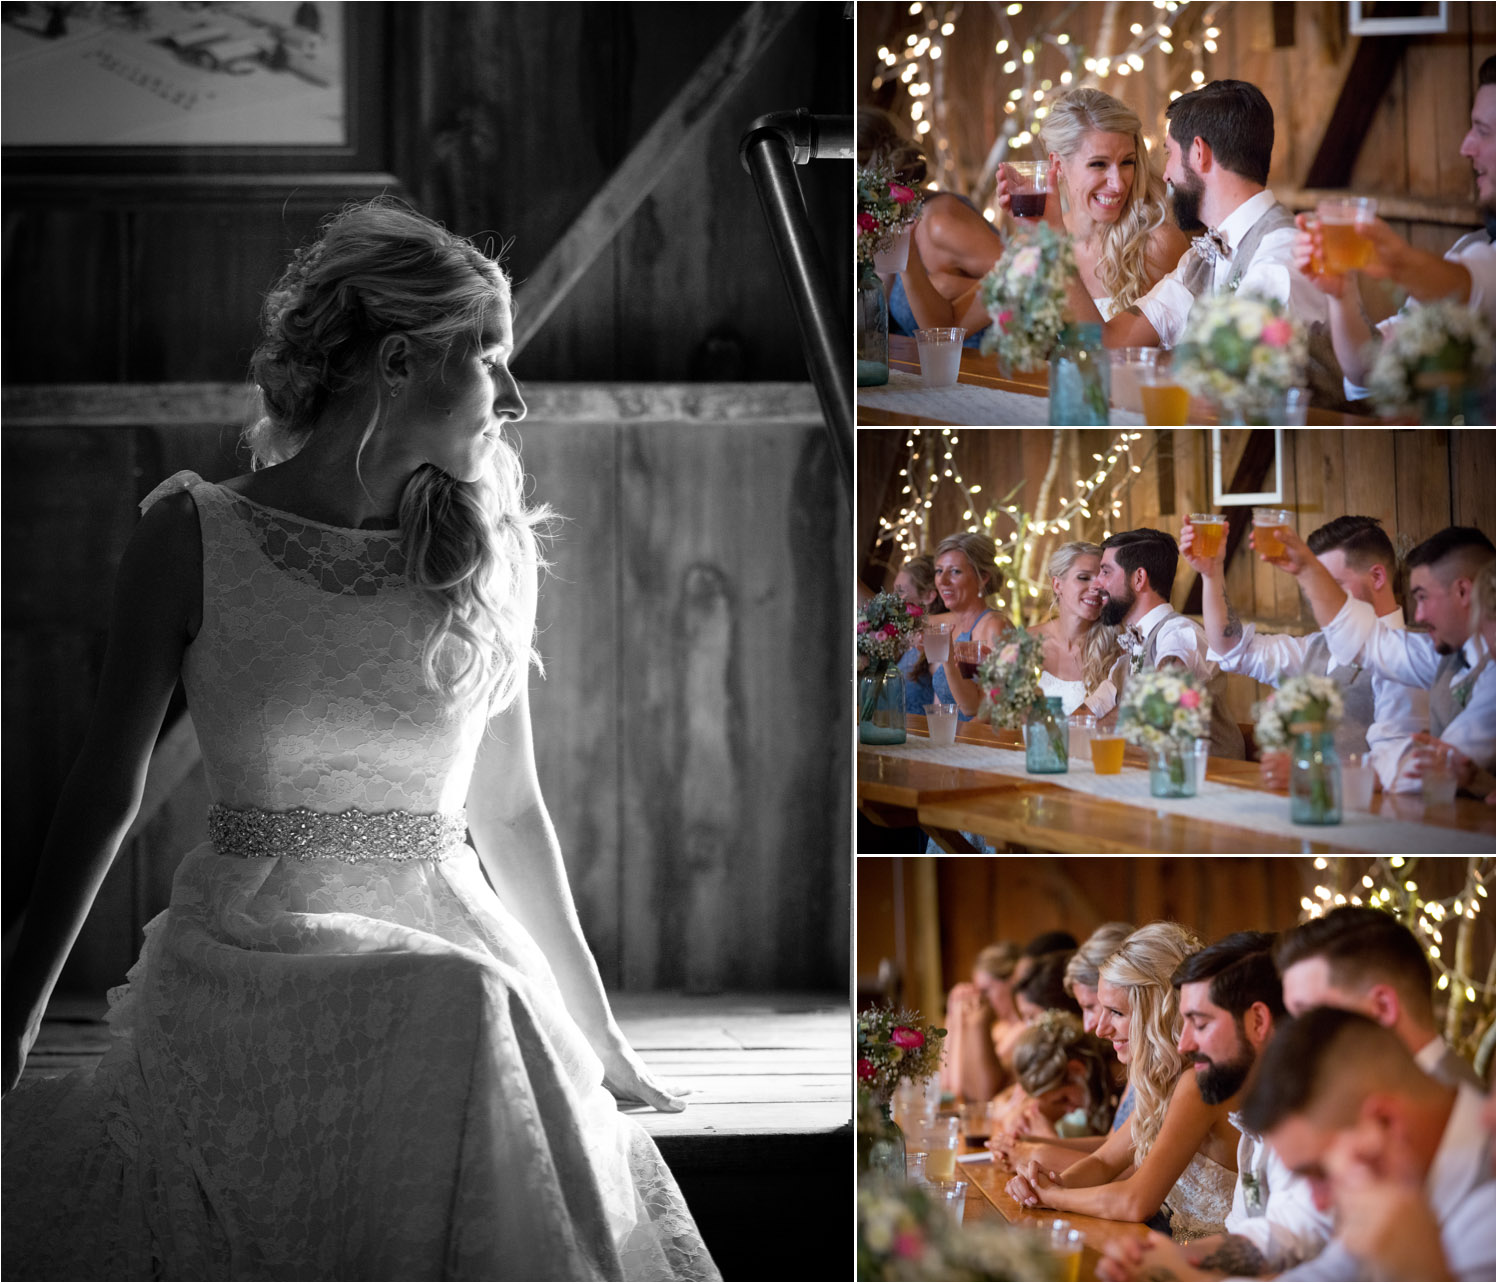 27-dellwood-barn-weddings-minnesota-wedding-photographer-summer-reception-fun-toasts-black-and-white-bride-mahonen-photography.jpg